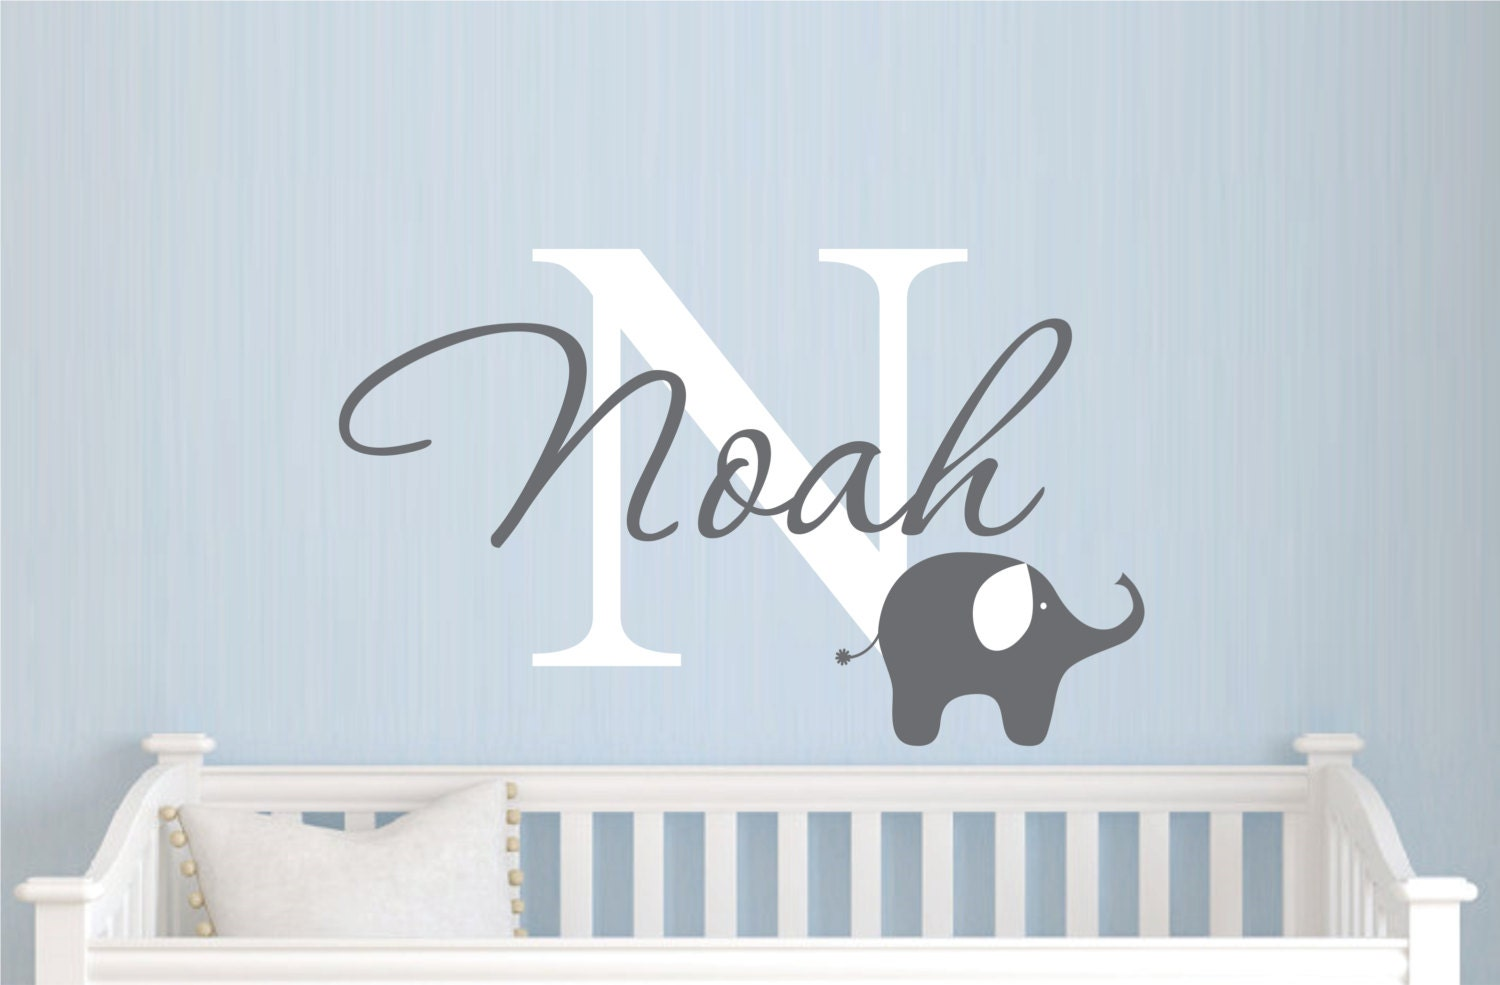 Baby boy room decor stickers - Childrens Name Elephant Wall Decal Boys Name Vinyl Wall Decal Baby Nursery Wall Decal